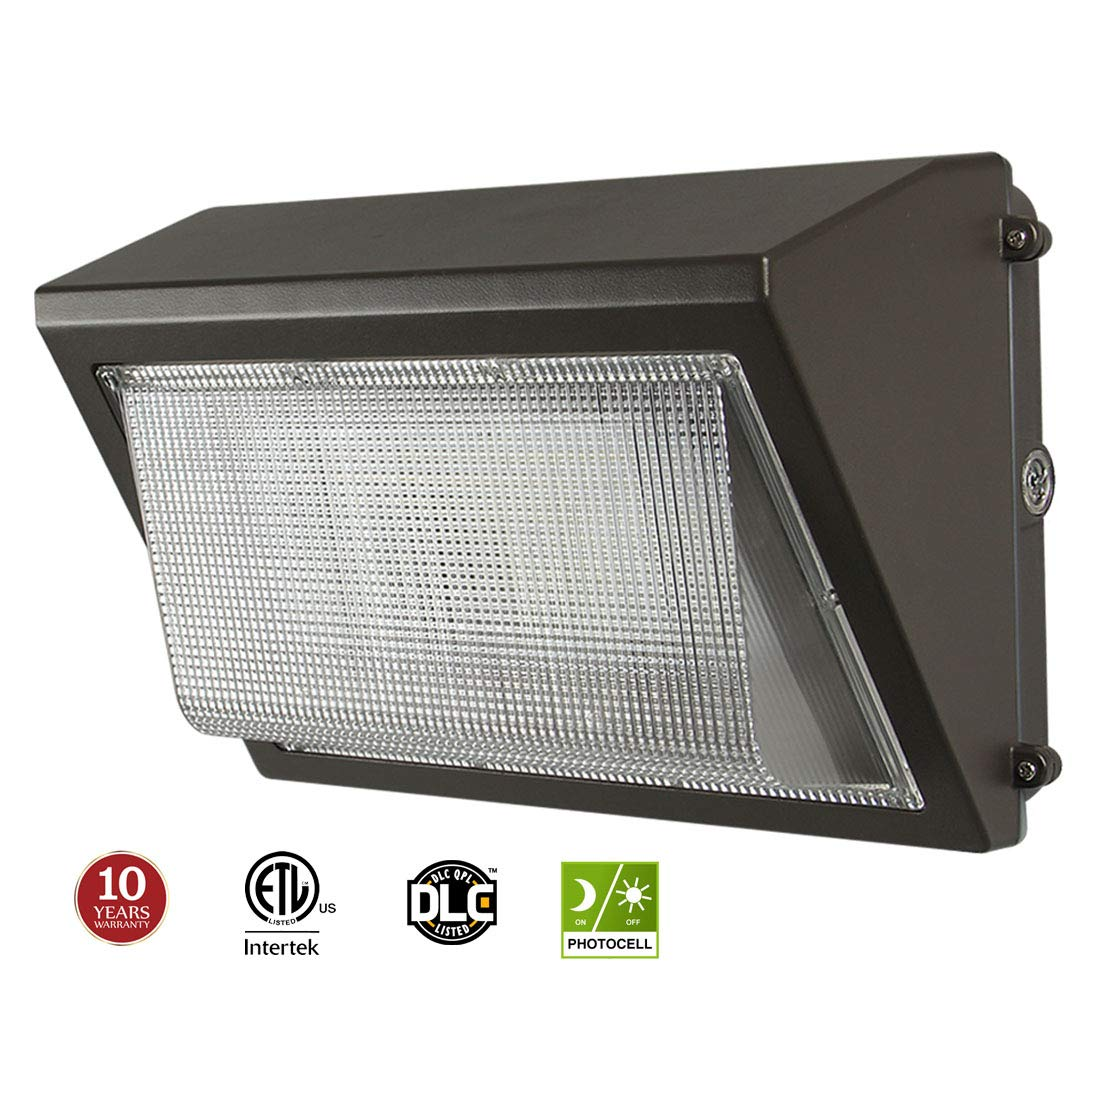 LED Wall Pack with Dusk-to-dawn Photocell, 60W Waterproof Outdoor Commercial Lighting Fixture, 200-300W HPS/MH Replacement, 5000K 7200lm 100-277Vac ETL DLC Listed 10-year Warranty by Kadision by kadision